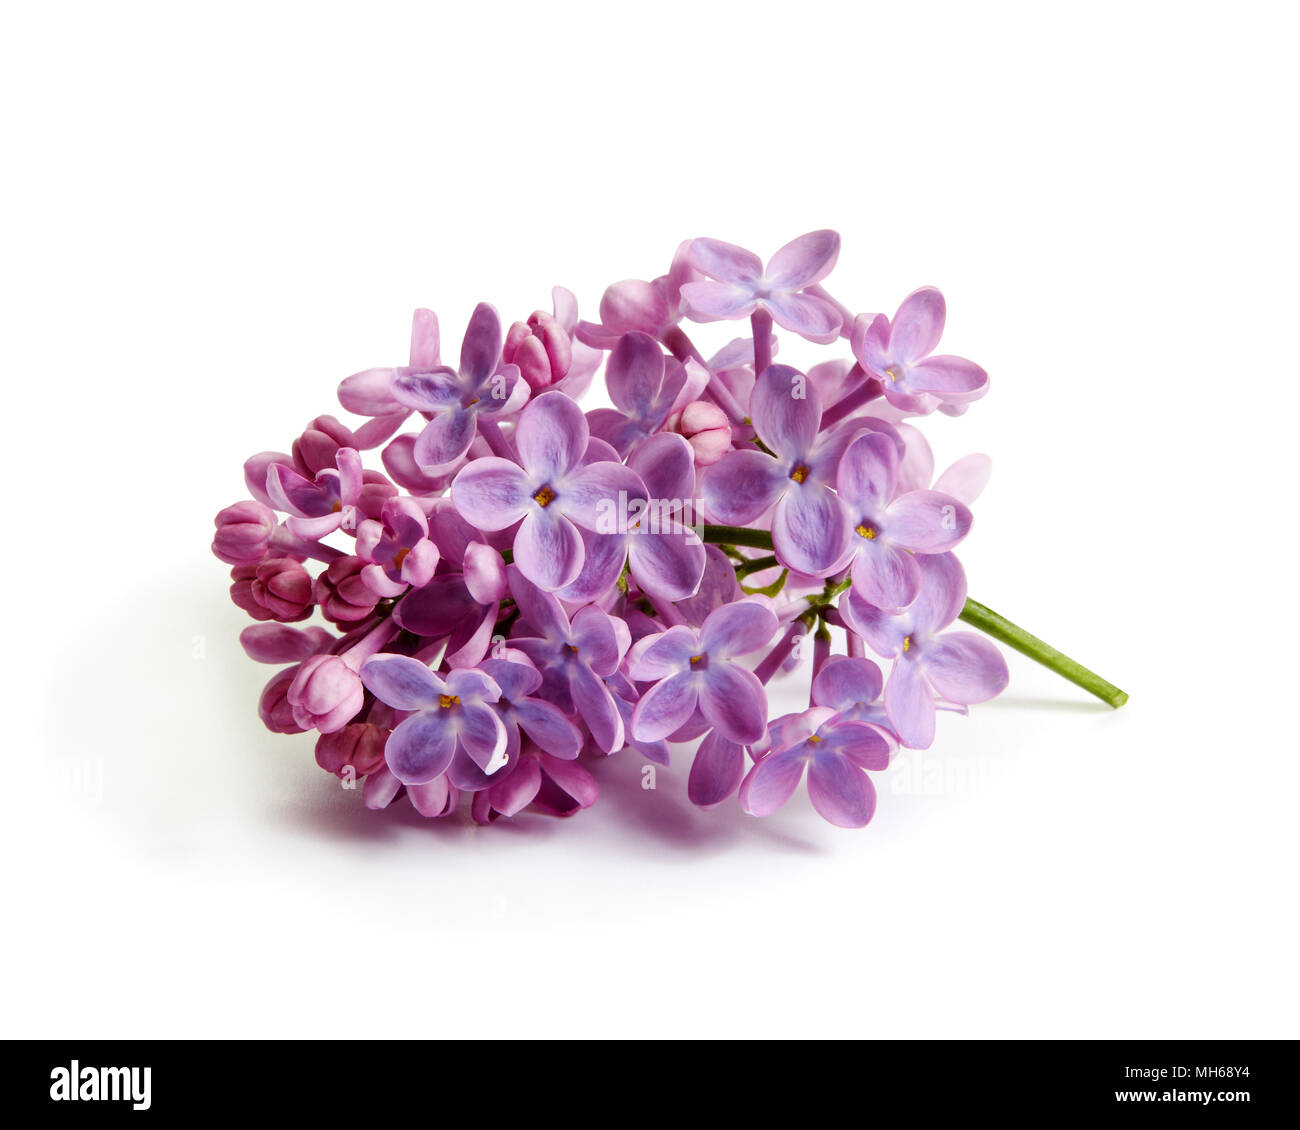 Purple lilac flower on white background. - Stock Image